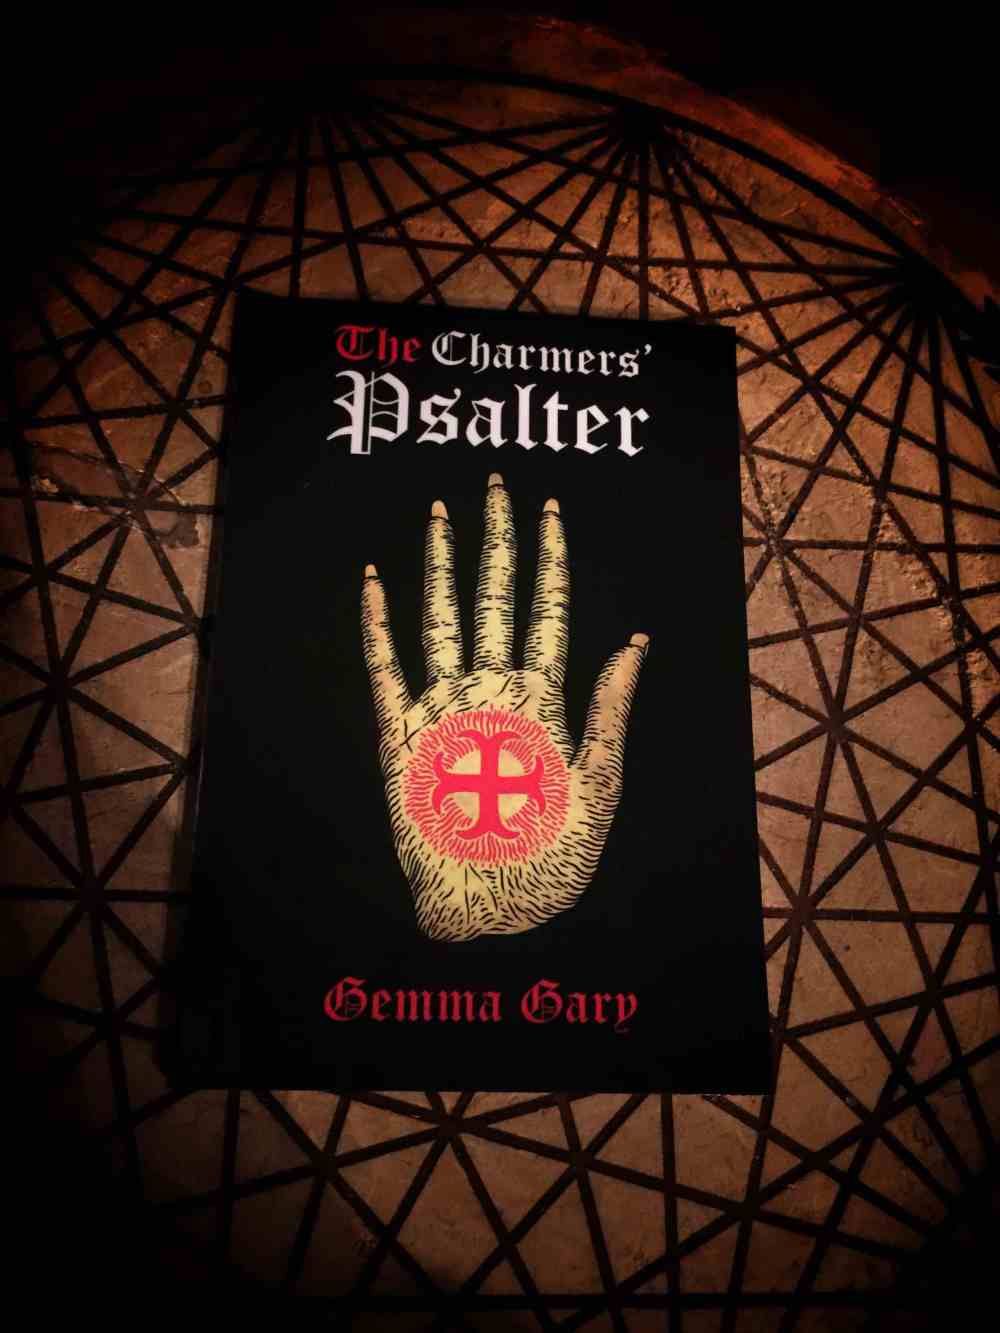 The Charmers Psalter